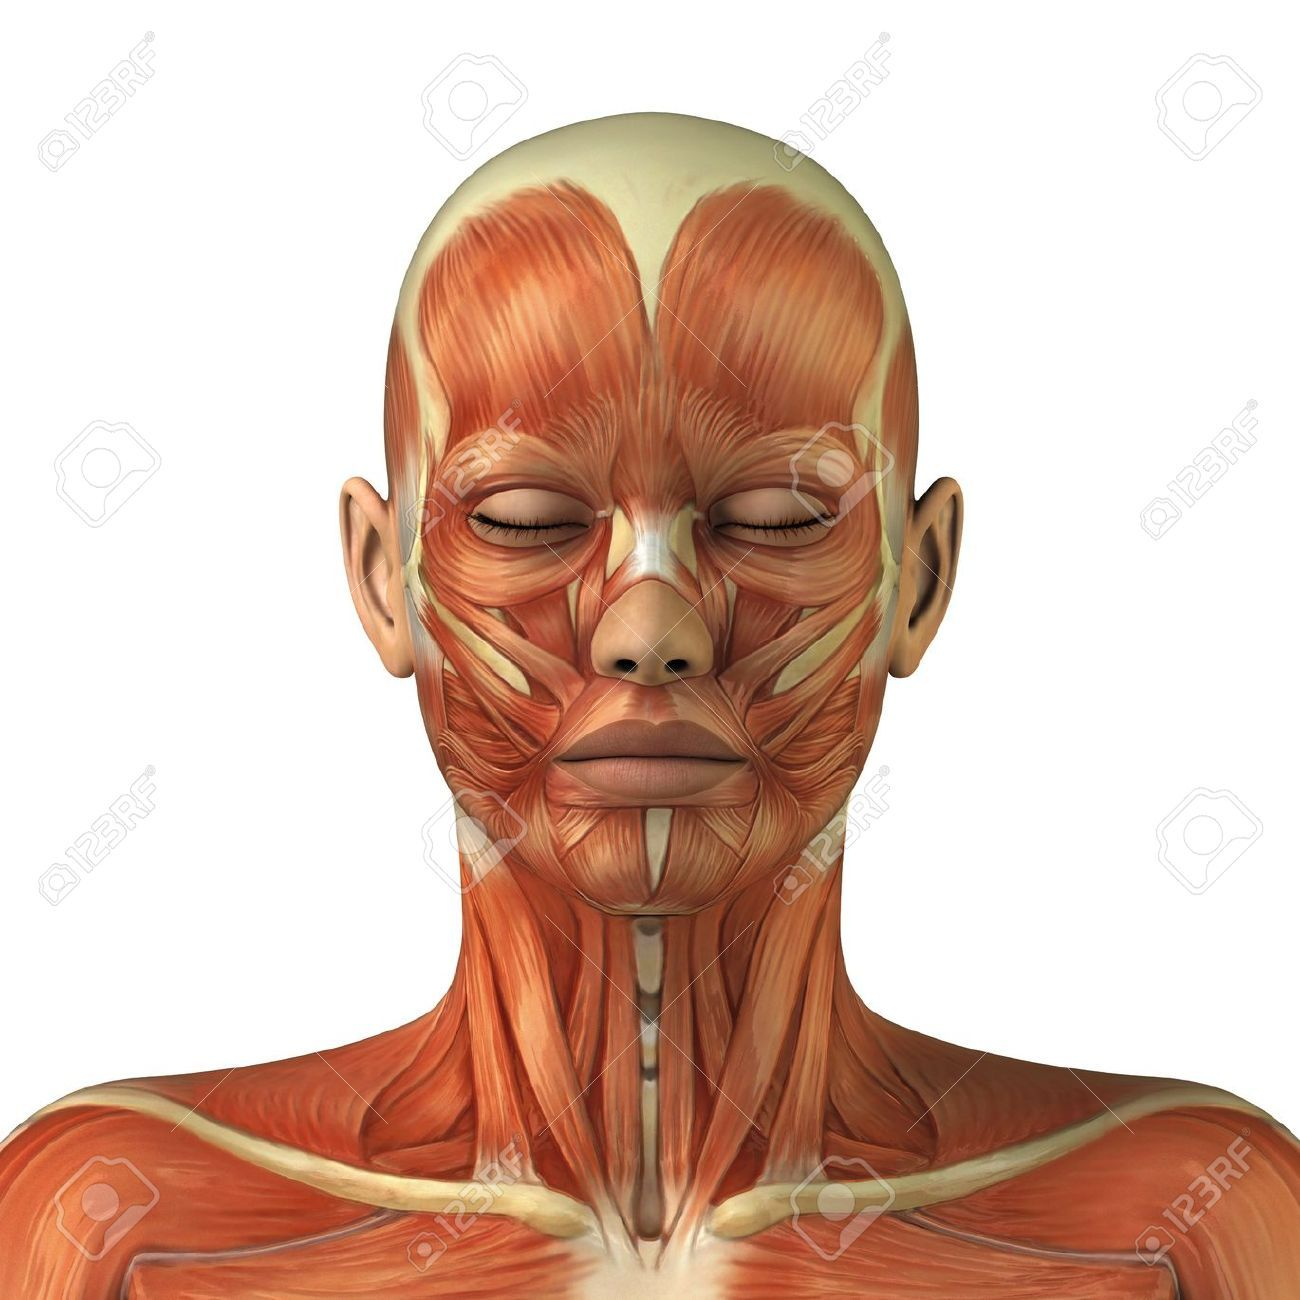 9609301 body without skin anterior view stock photo anatomy muscles 9609301 body without skin anterior view stock photo ccuart Images